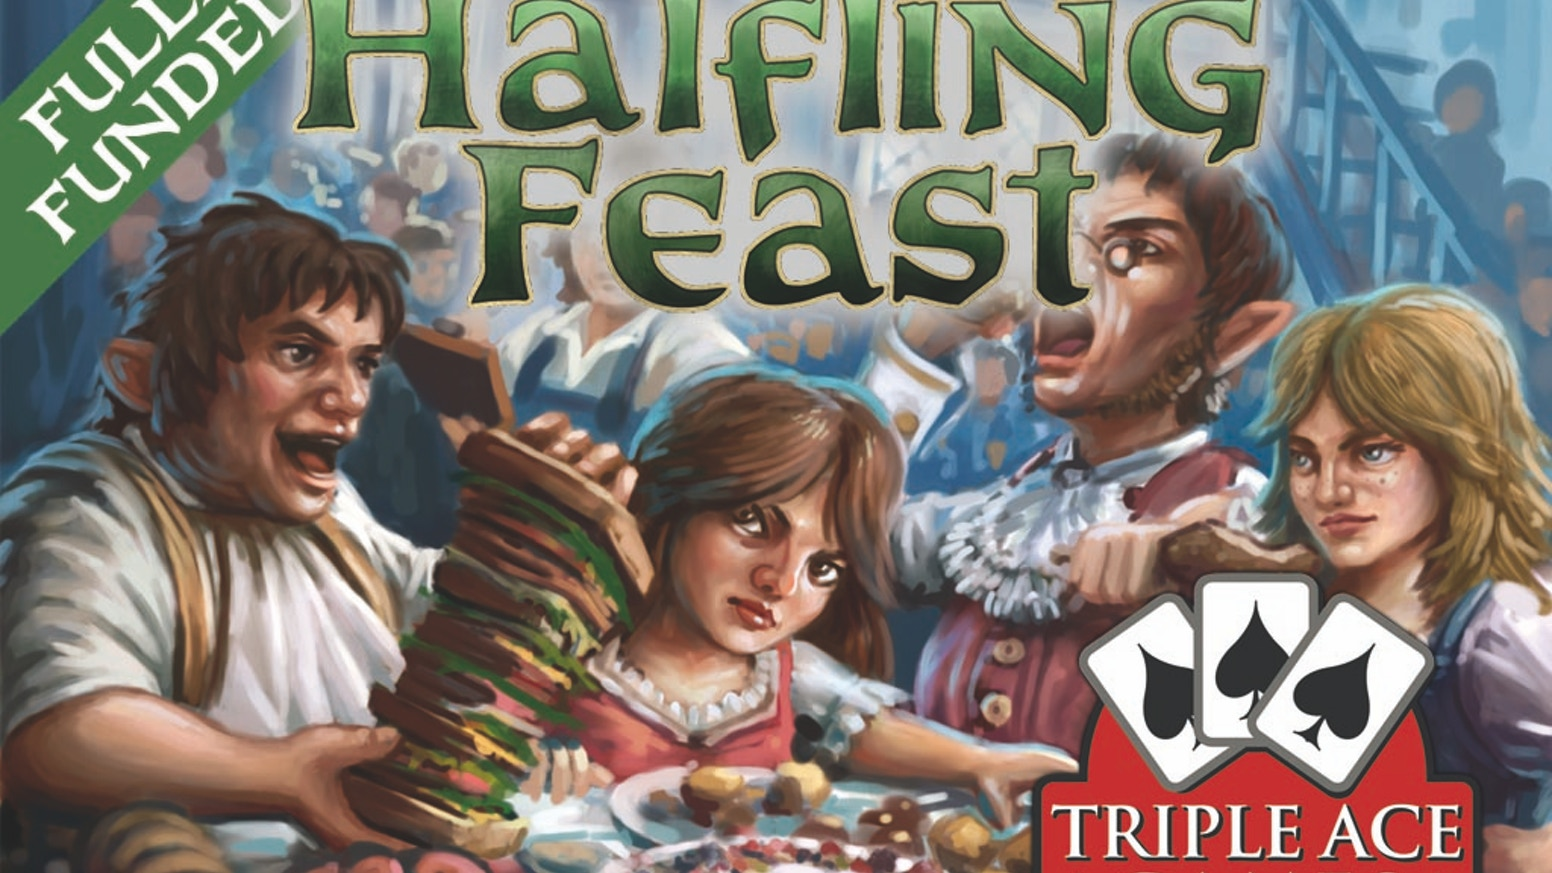 A fantasy card game of competitive eating for 2-6 Players. Let the feast begin!